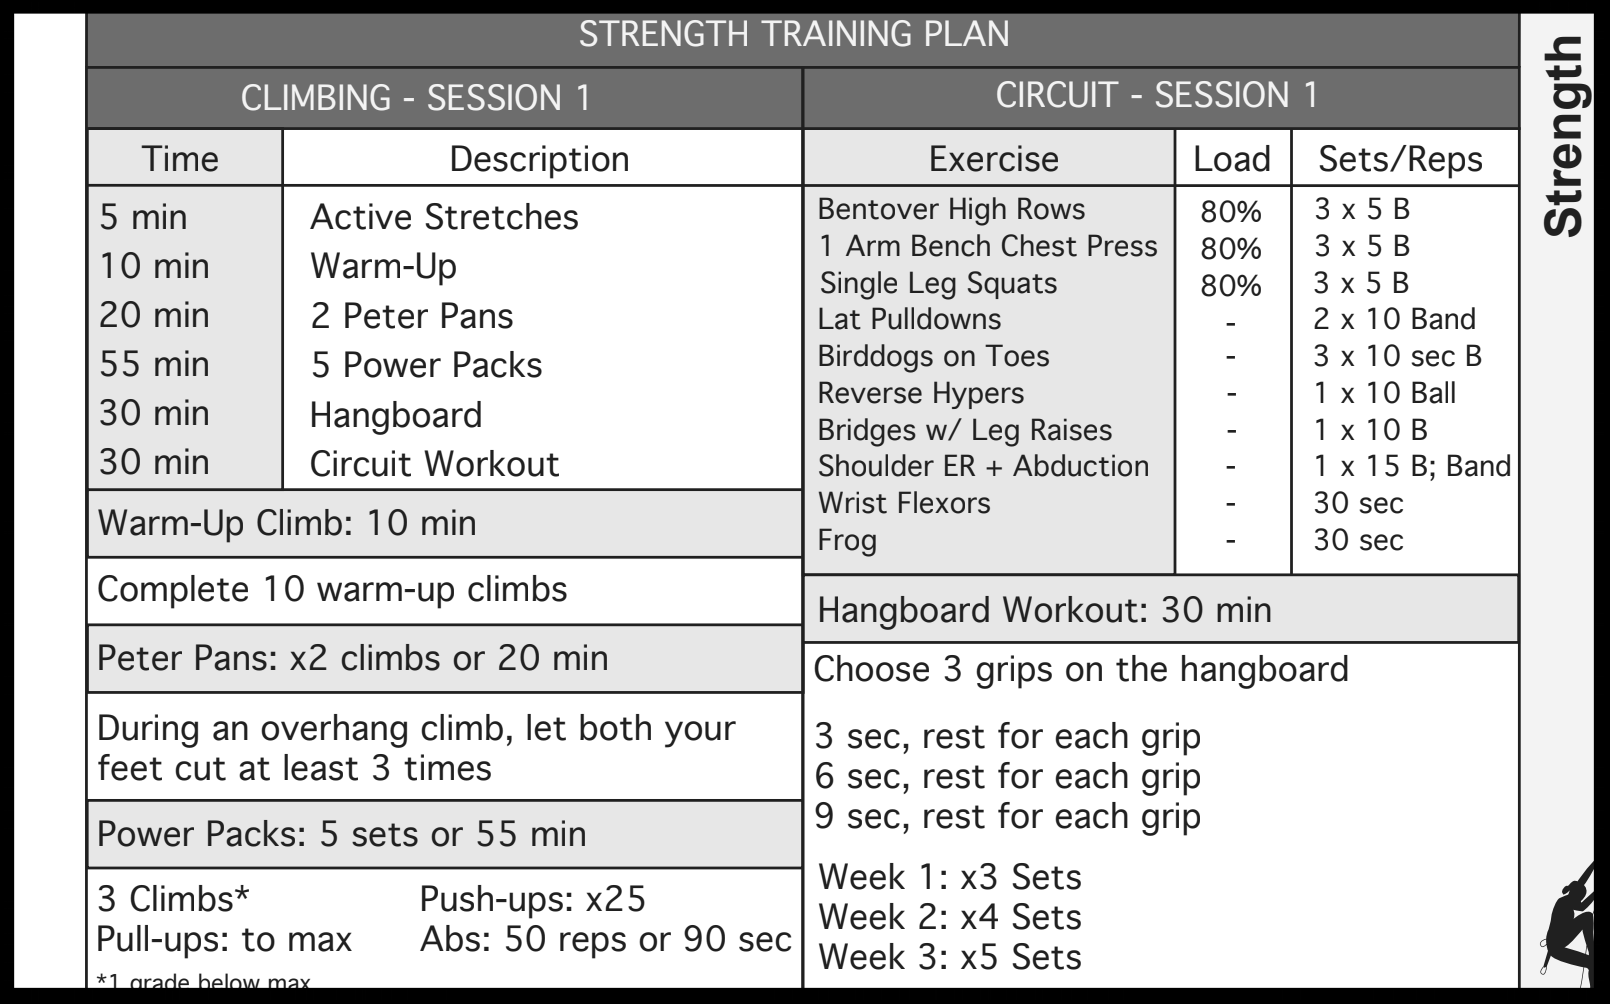 Strength Training Plan.png